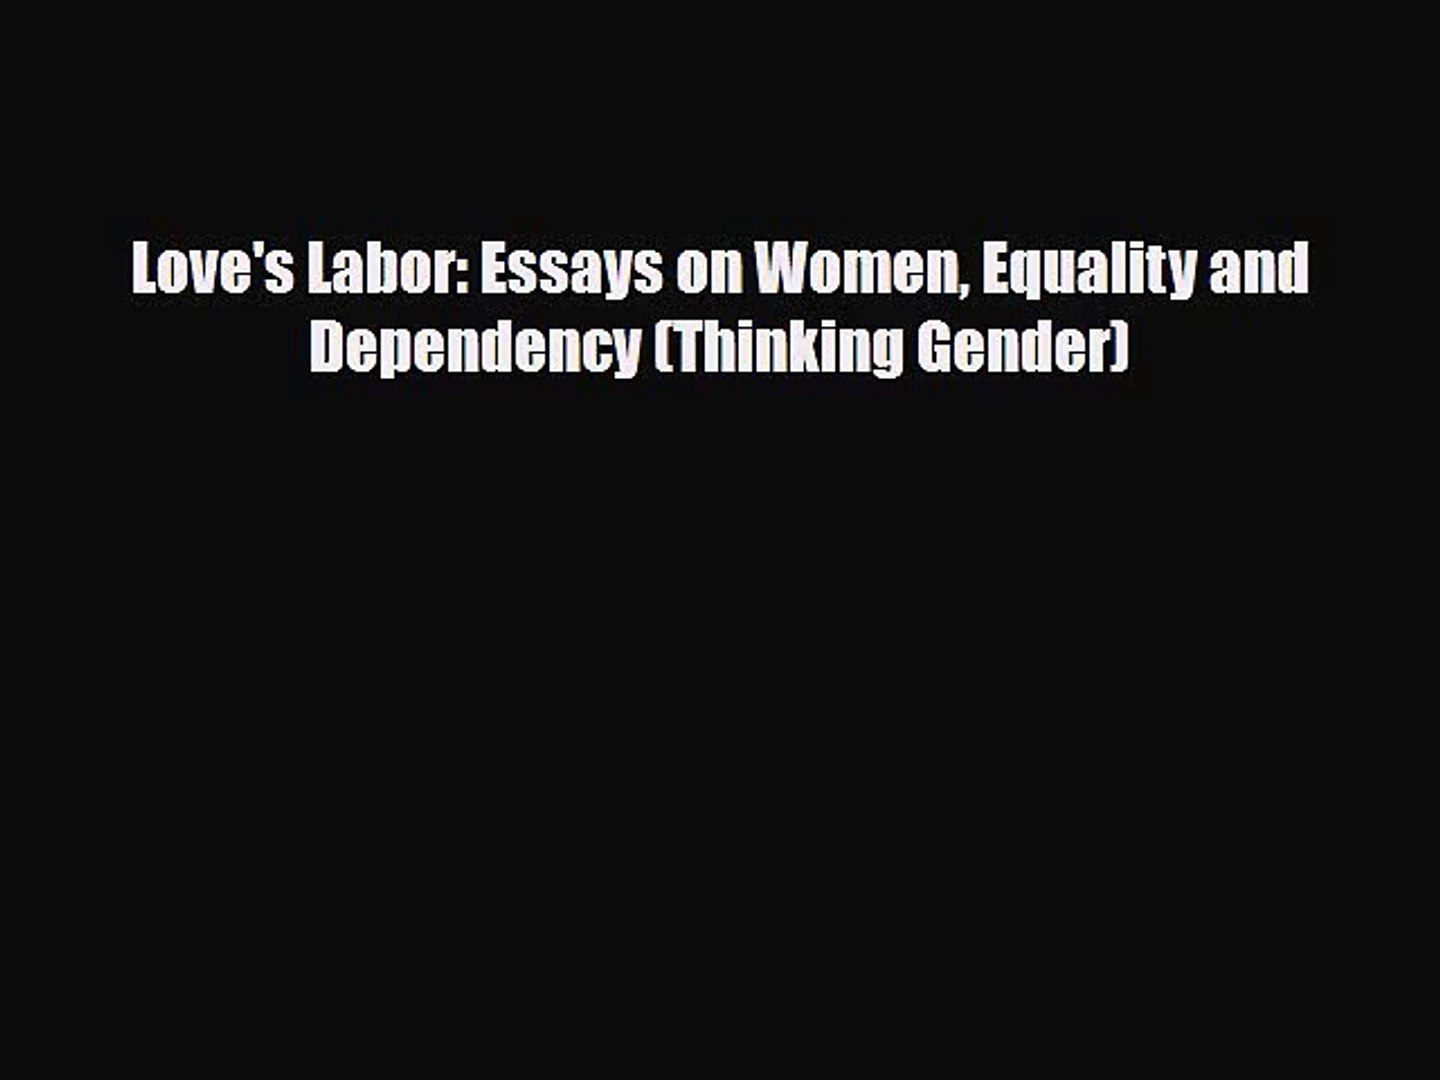 pdf download loves labor essays on women equality and dependency  pdf download loves labor essays on women equality and dependency  thinking gender download   video dailymotion